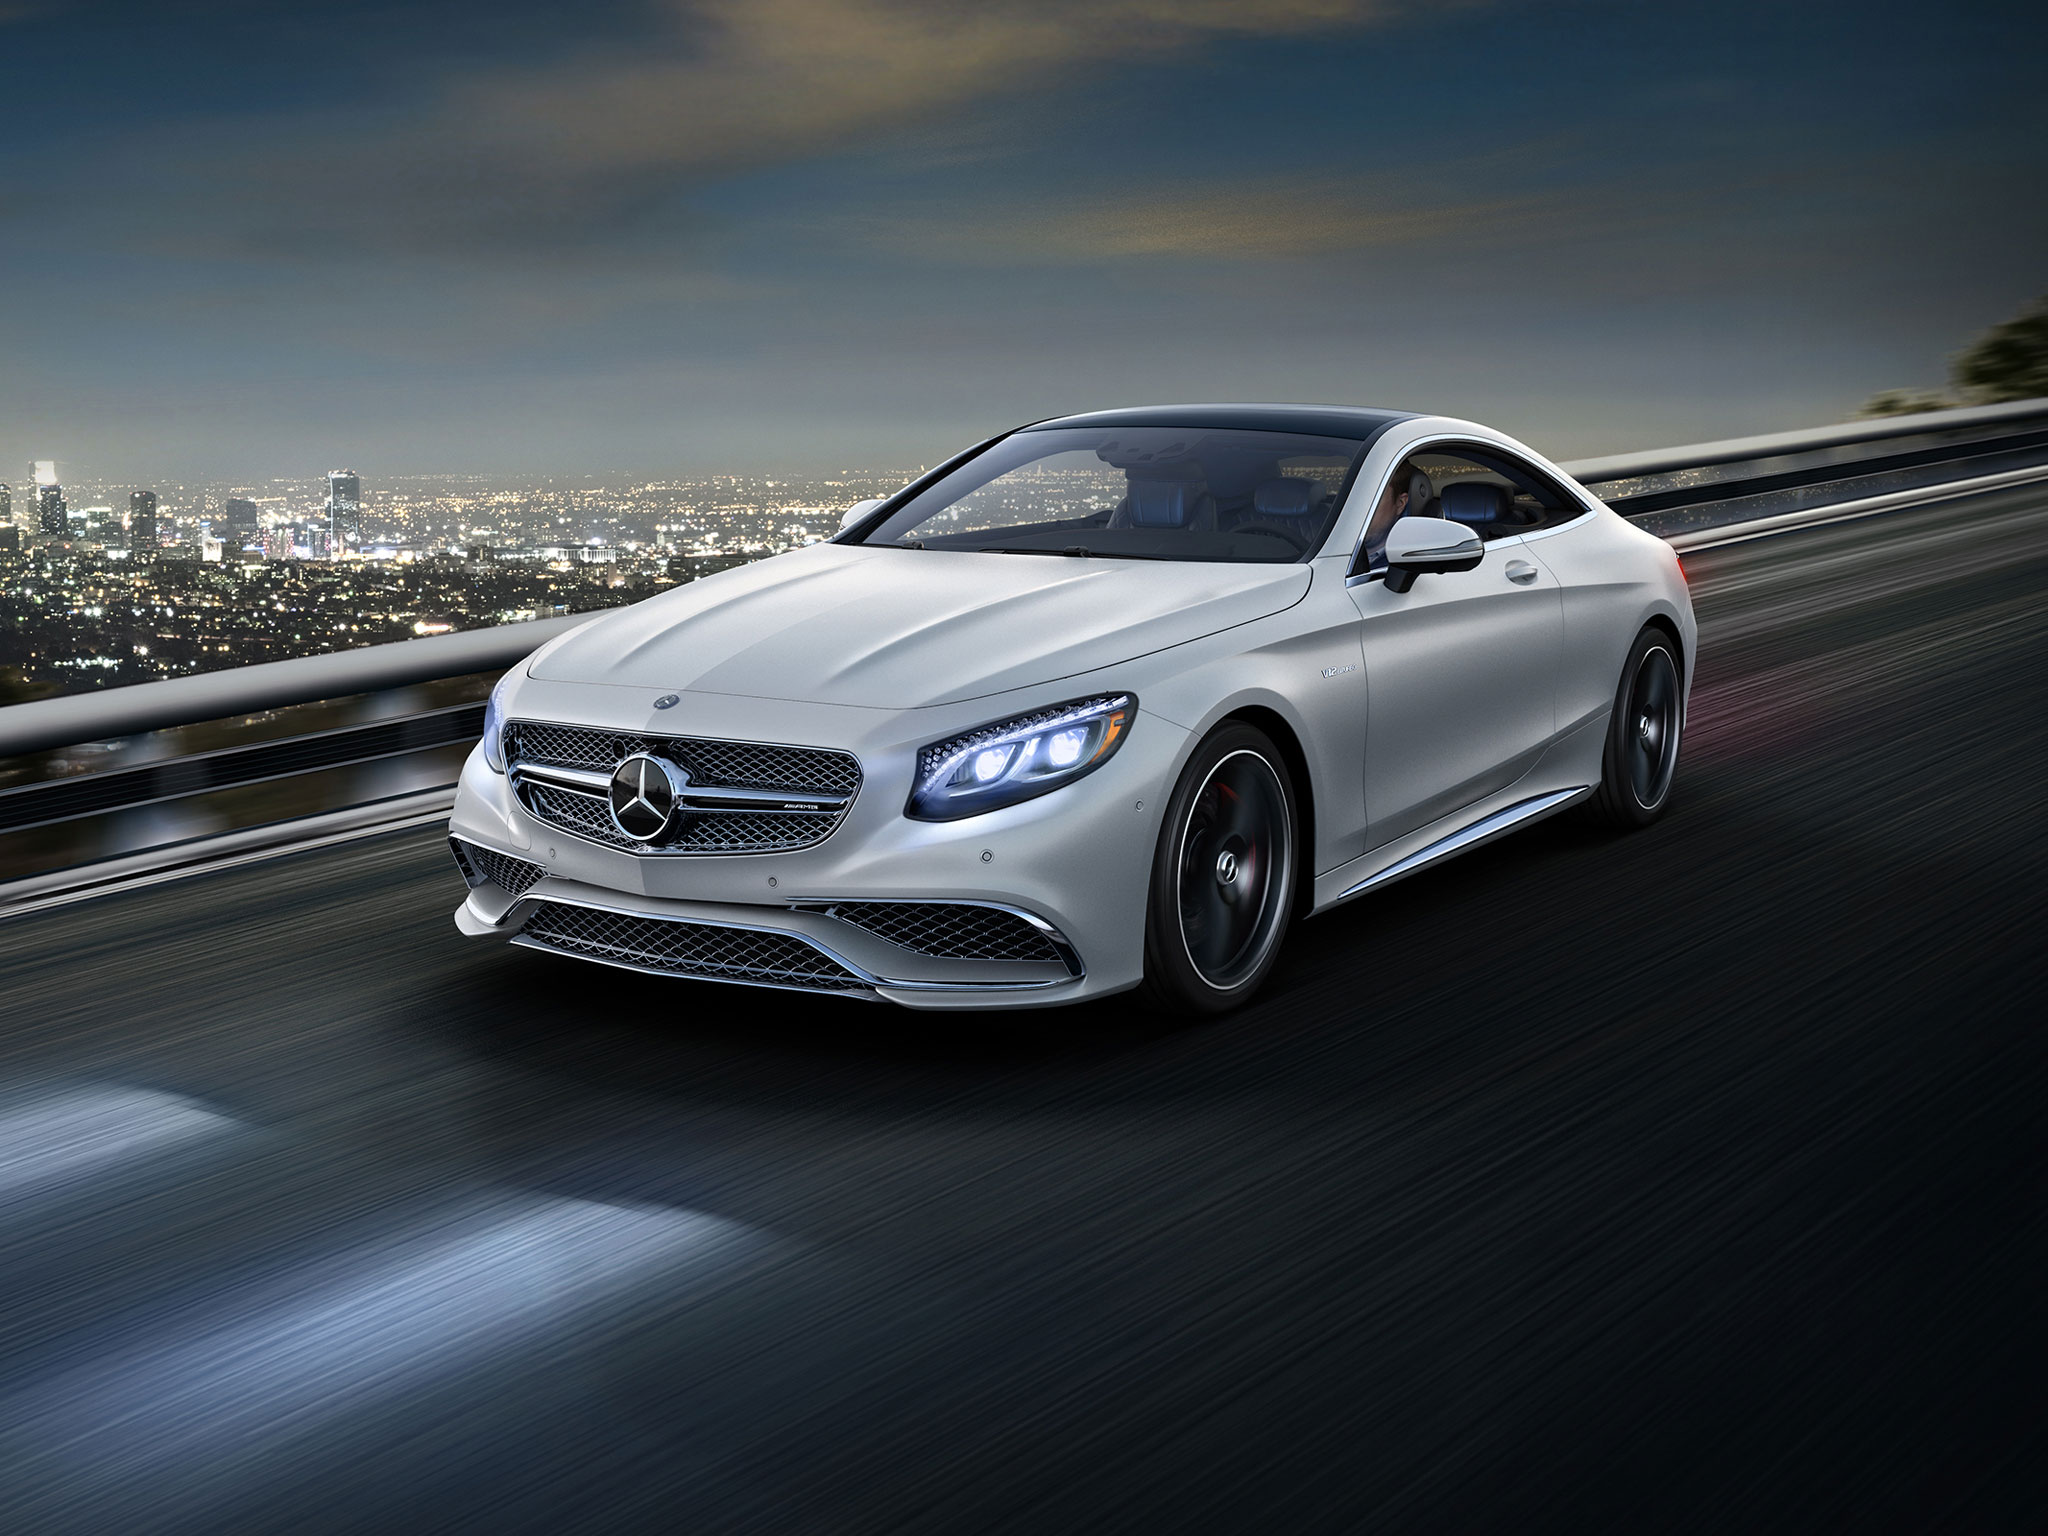 amg s65 coupe in designo magno cashmere white with black 20 inch amg wheels